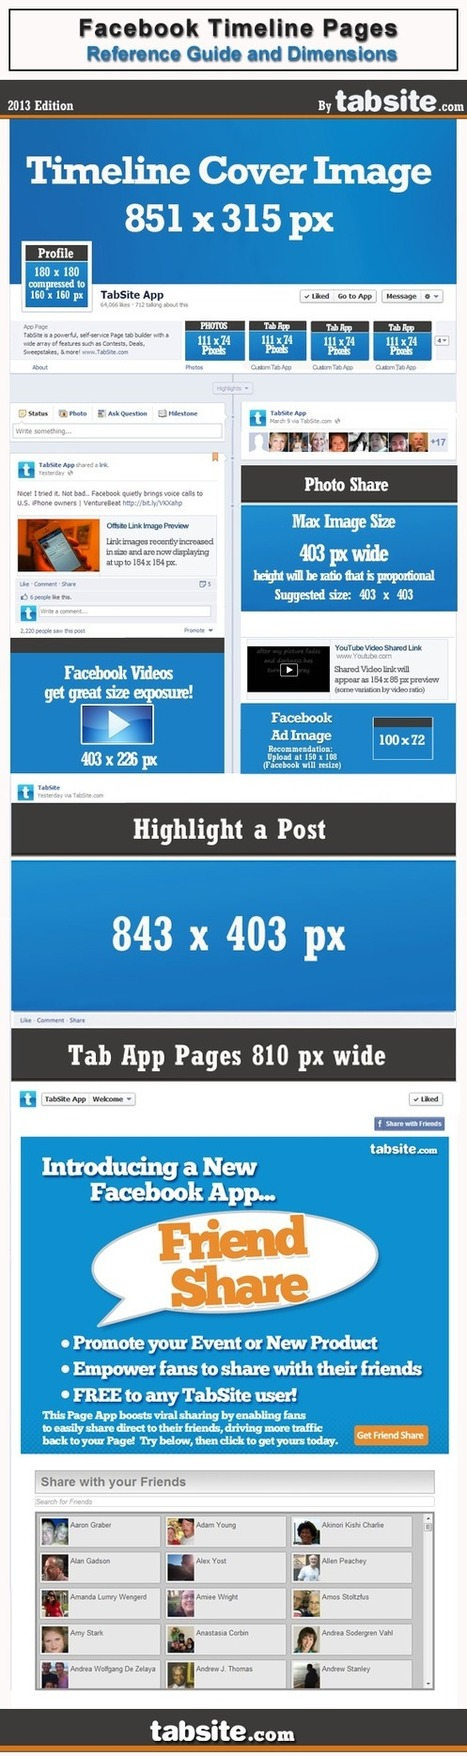 Updated 2013 Facebook Timeline for Pages Infographic with Images Sizes | Facebook Marketing Resources from Mike Gingerich | Scoop.it